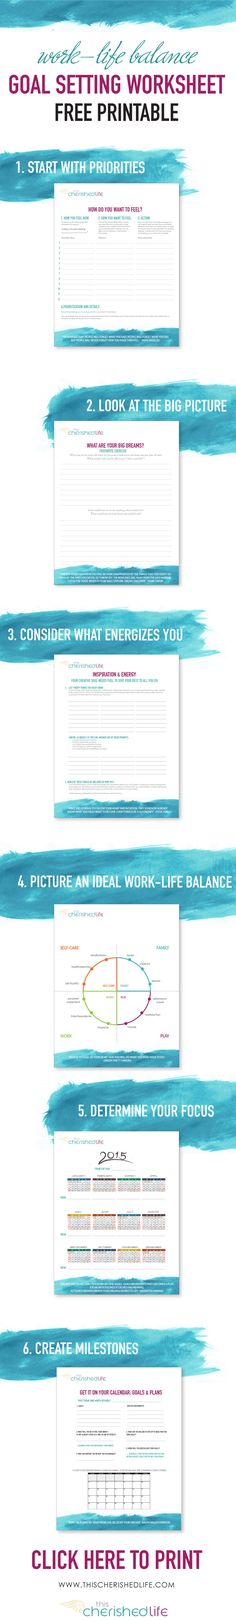 FREE goal setting printable worksheet - Set goals that matter for work life balance especially for busy moms